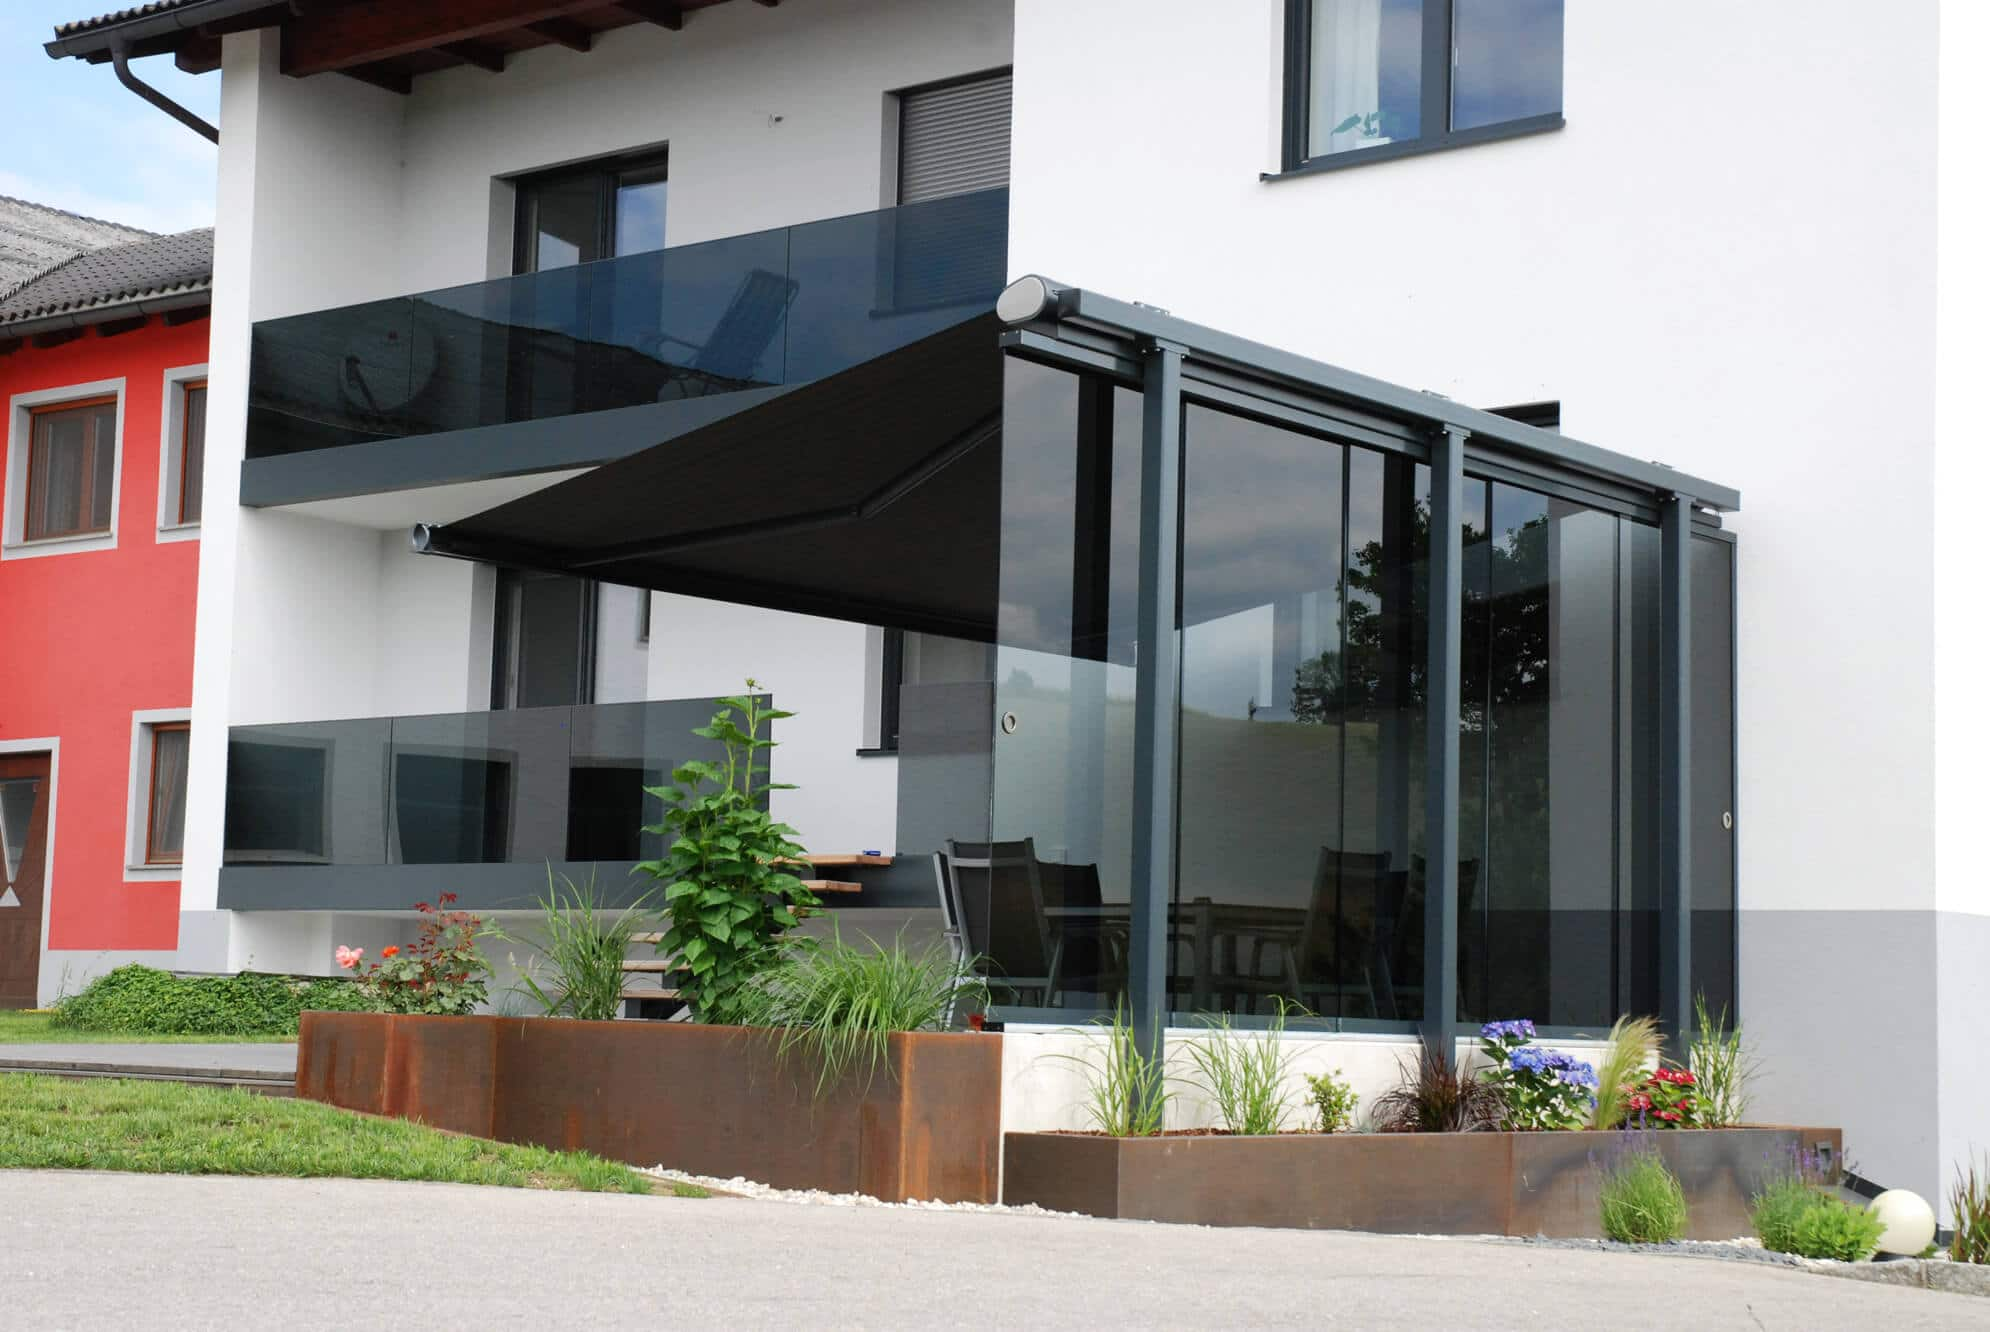 projekte von fenster t ren und winterg rten aus ganz sterreich. Black Bedroom Furniture Sets. Home Design Ideas